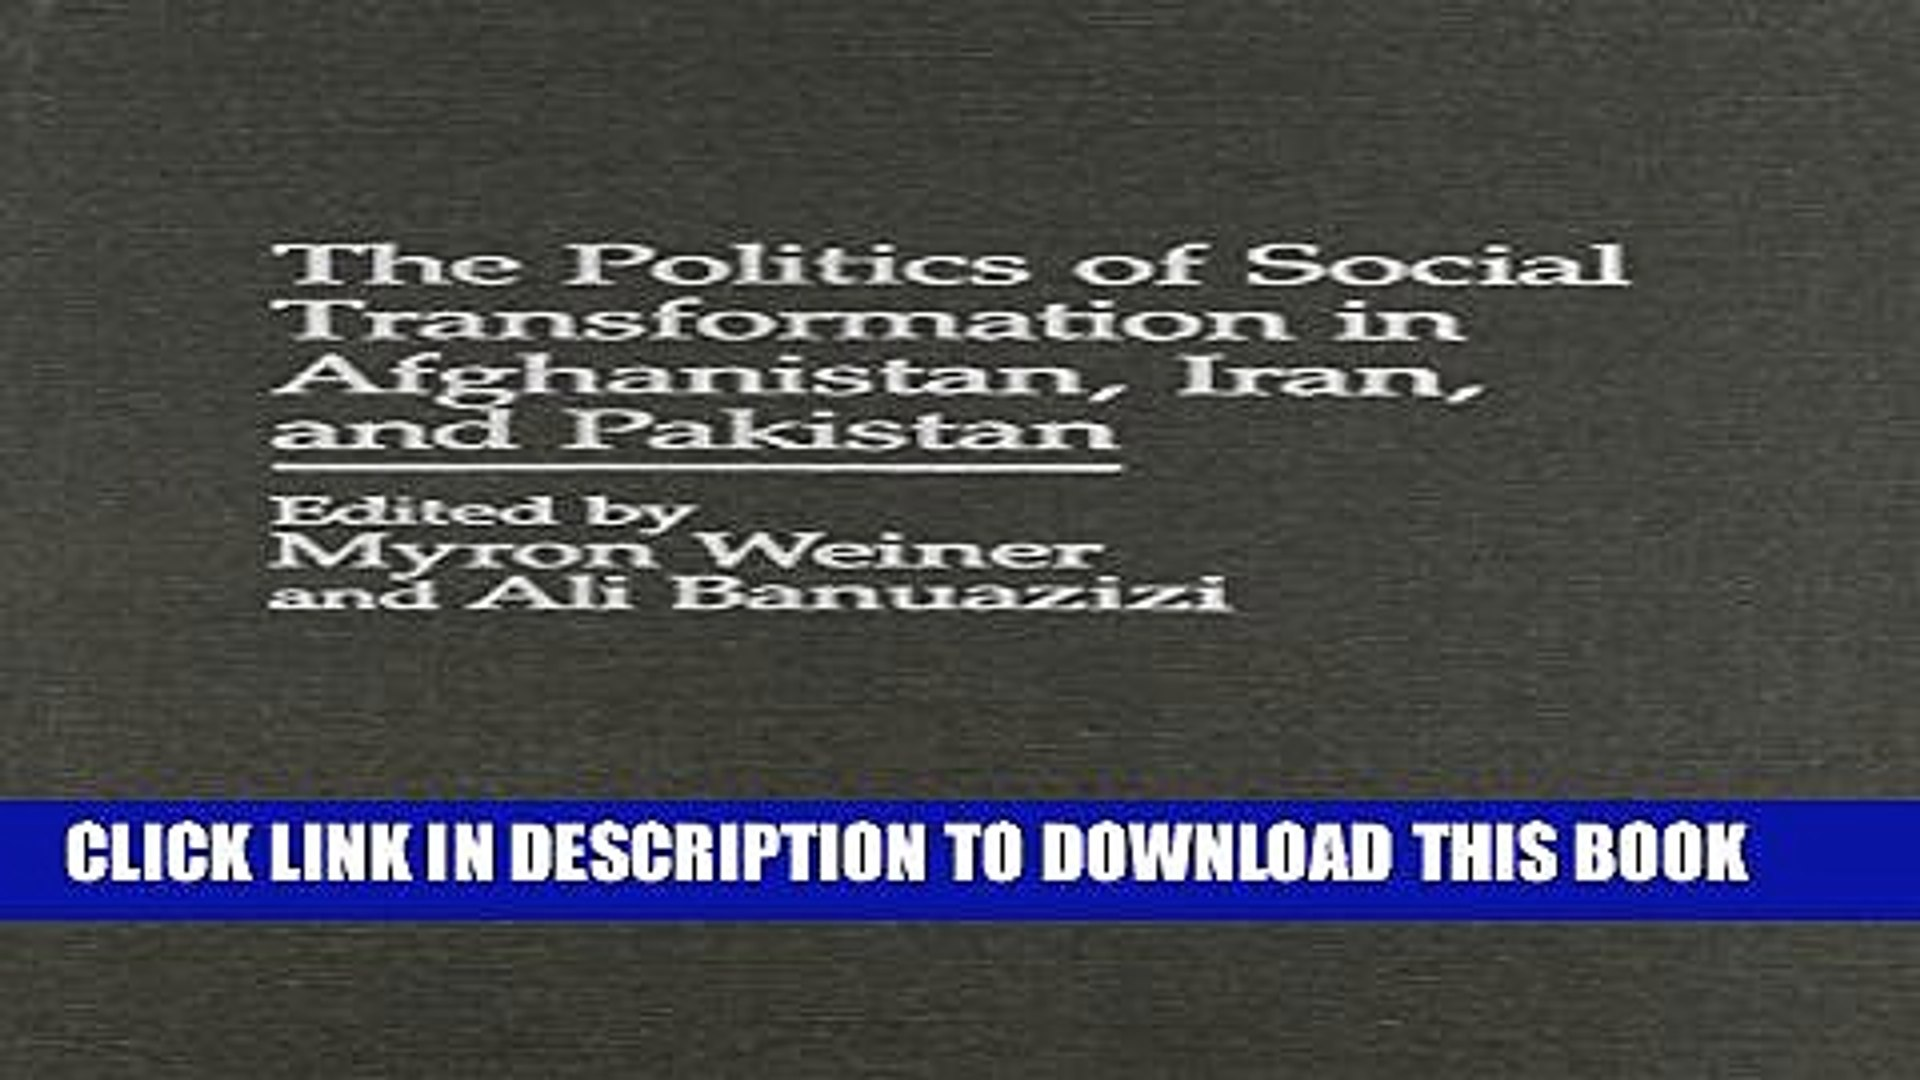 [PDF] The Politics of Social Transformation in Afghanistan, Iran, and Pakistan (Studies in African